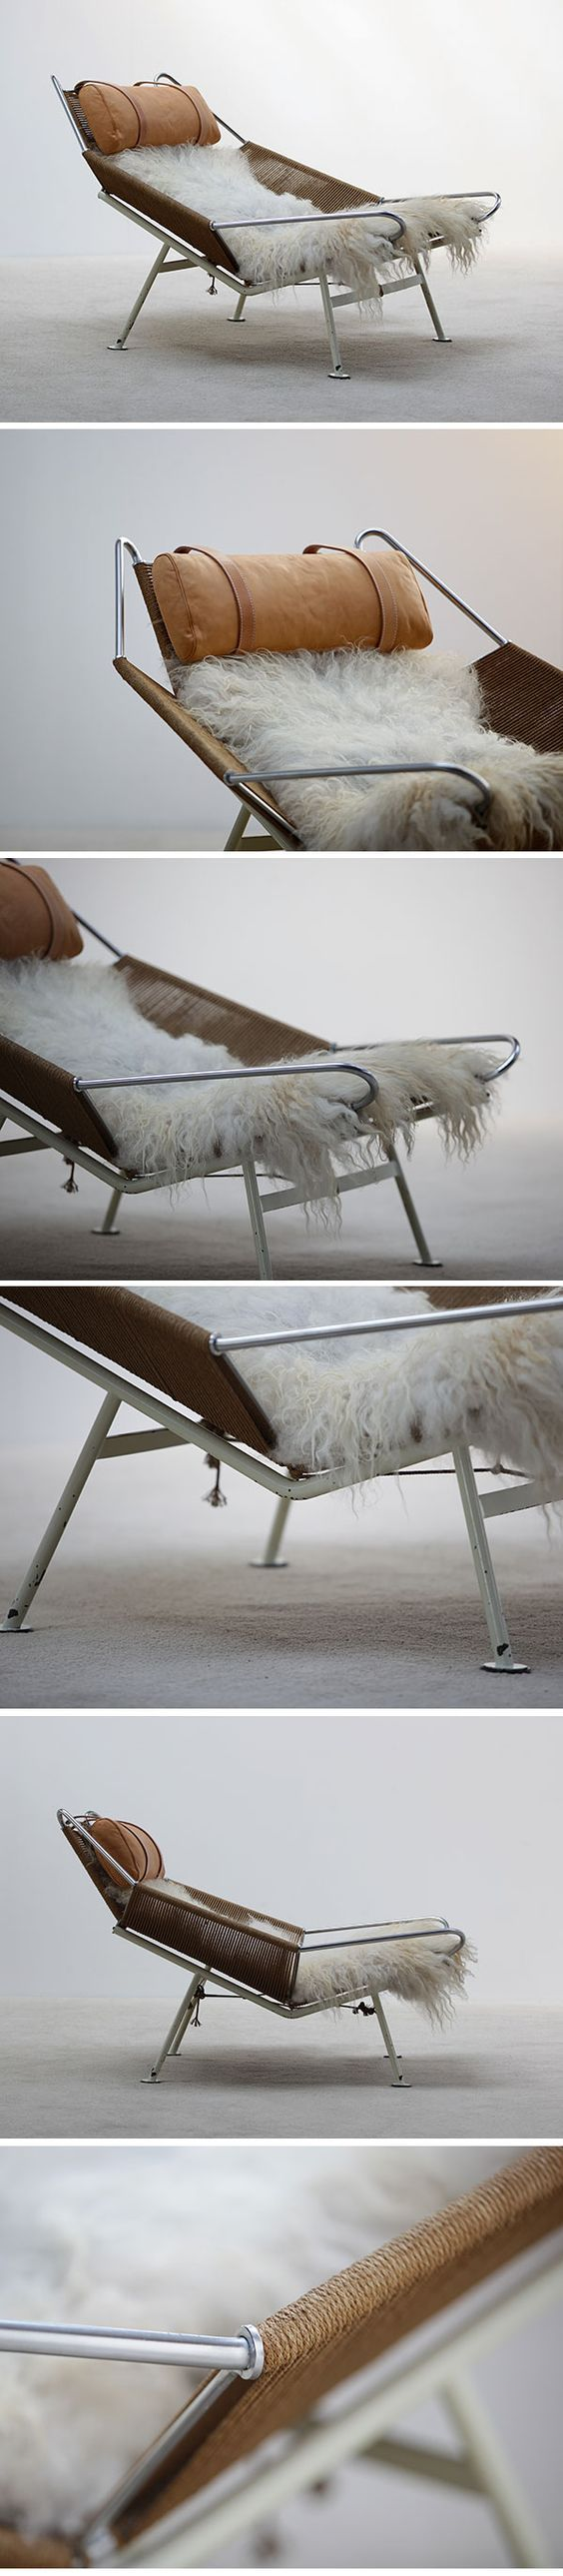 A very chic piece of furniture for your modern living space.  https://www.barcelona-designs.com/products/flag-halyard-chair?utm_content=buffer02fbf&utm_medium=social&utm_source=pinterest.com&utm_campaign=buffer #modern #homedecor #furniture #FlagHalyardchair #chair